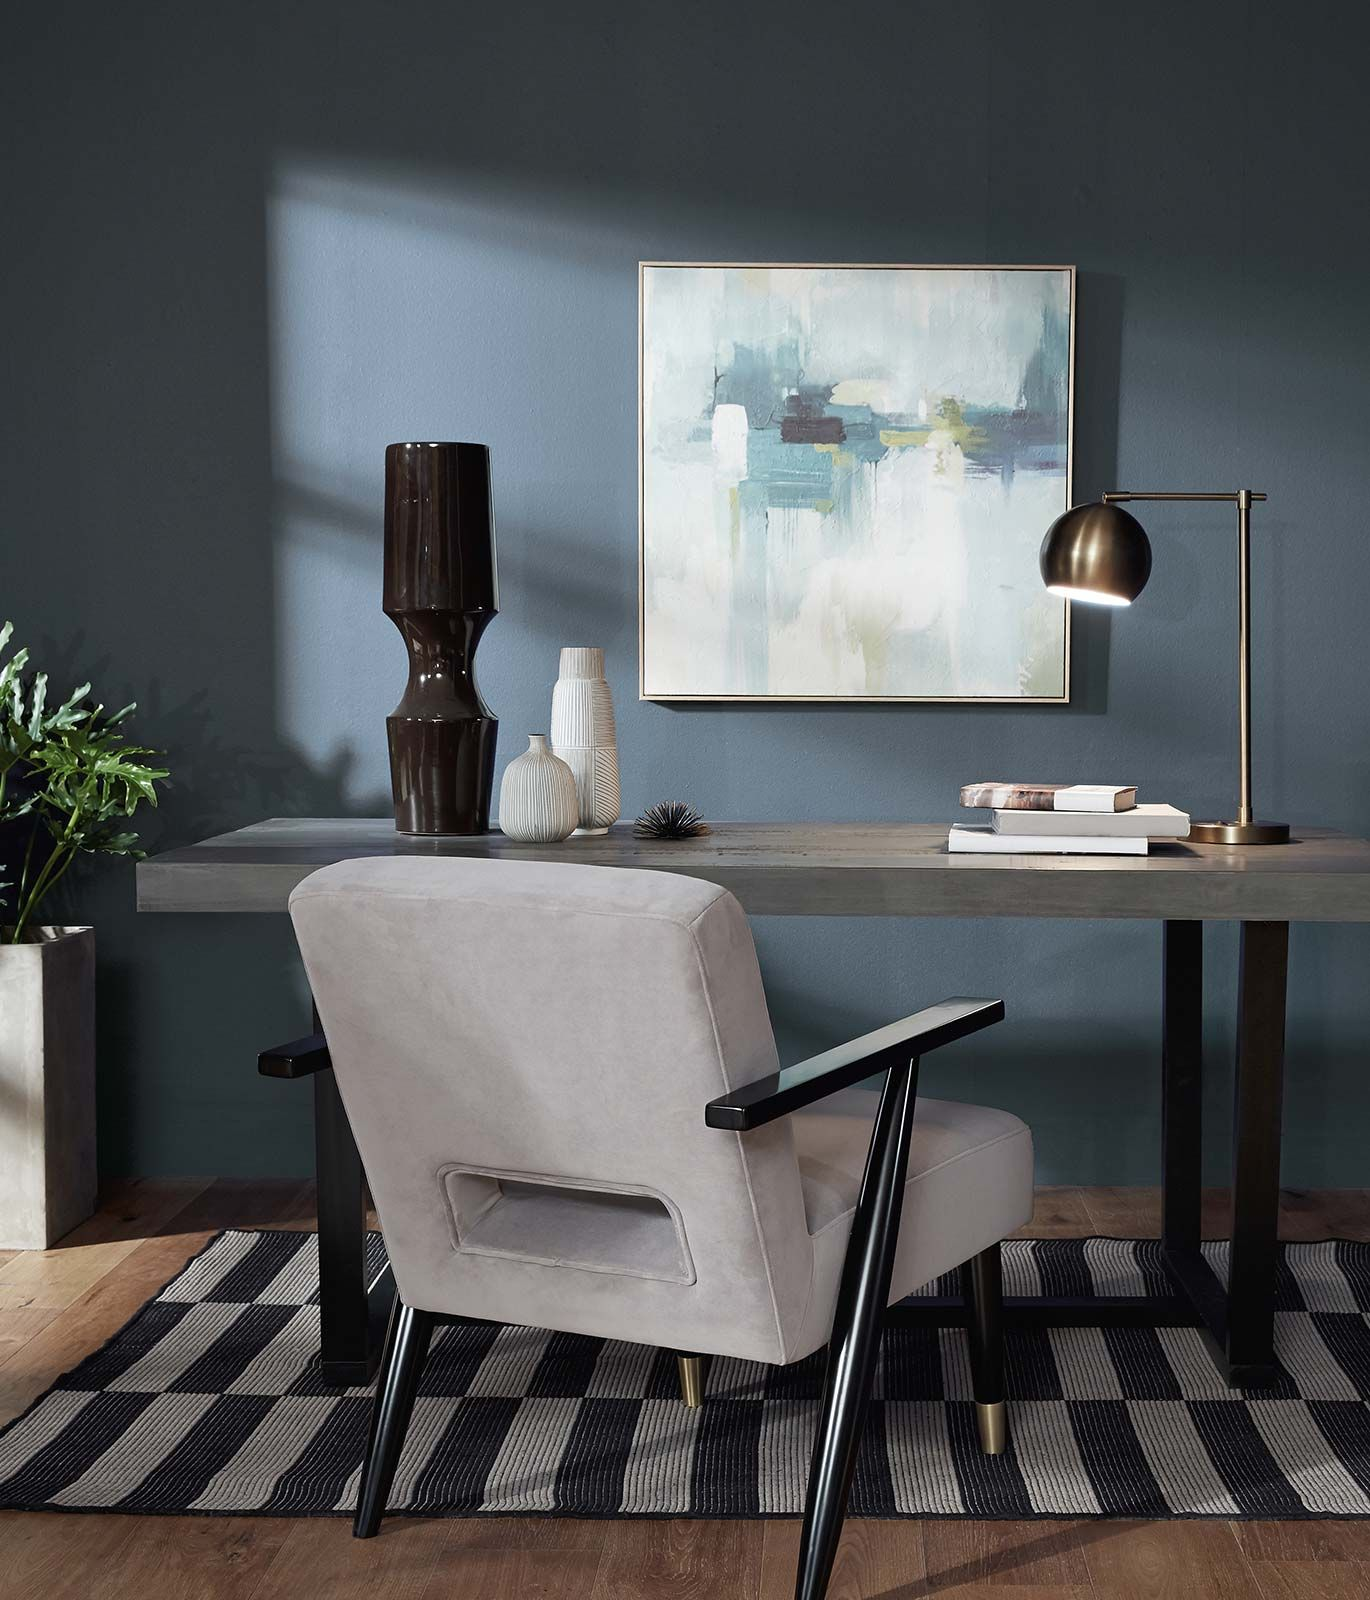 calm zone color palette paint color trends 2021 behr on best colors for home office space 2021 id=93163